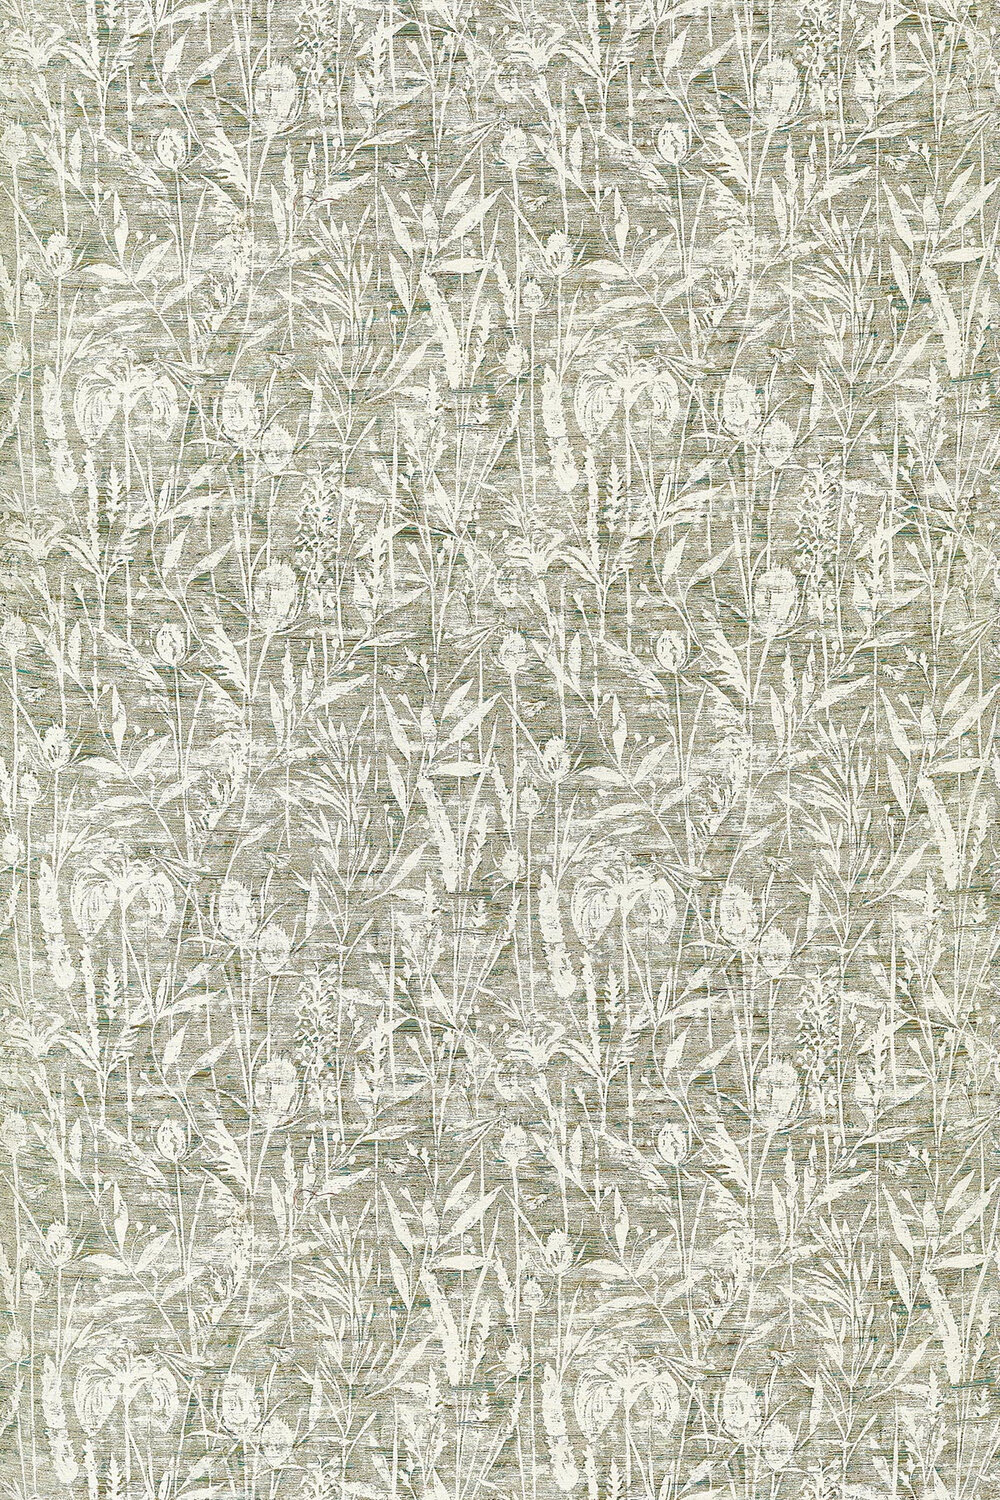 Violet Grasses Fabric - Moss - by Sanderson